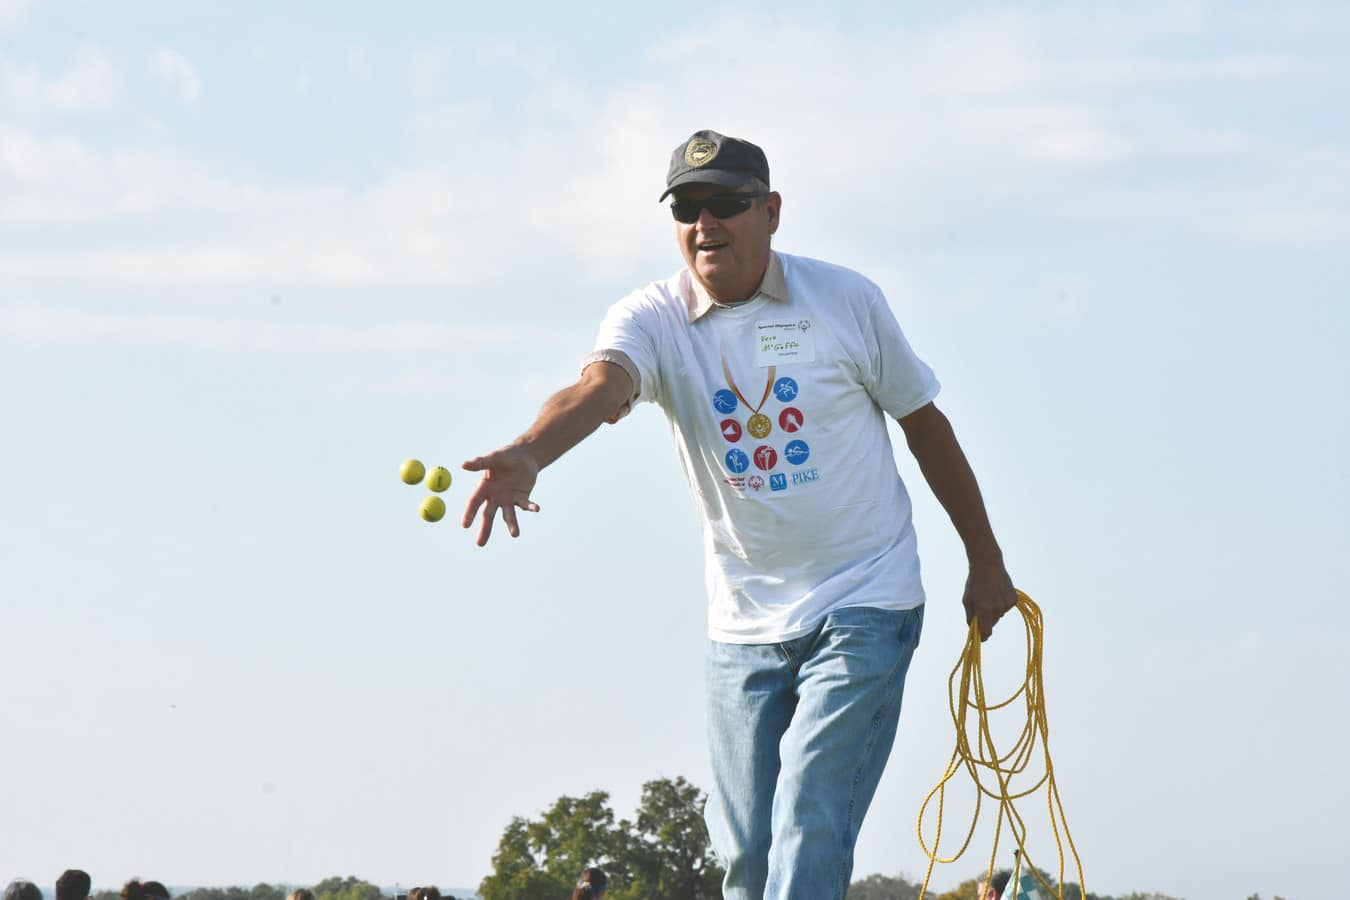 Volunteer holding a rope tosses three small yellow balls